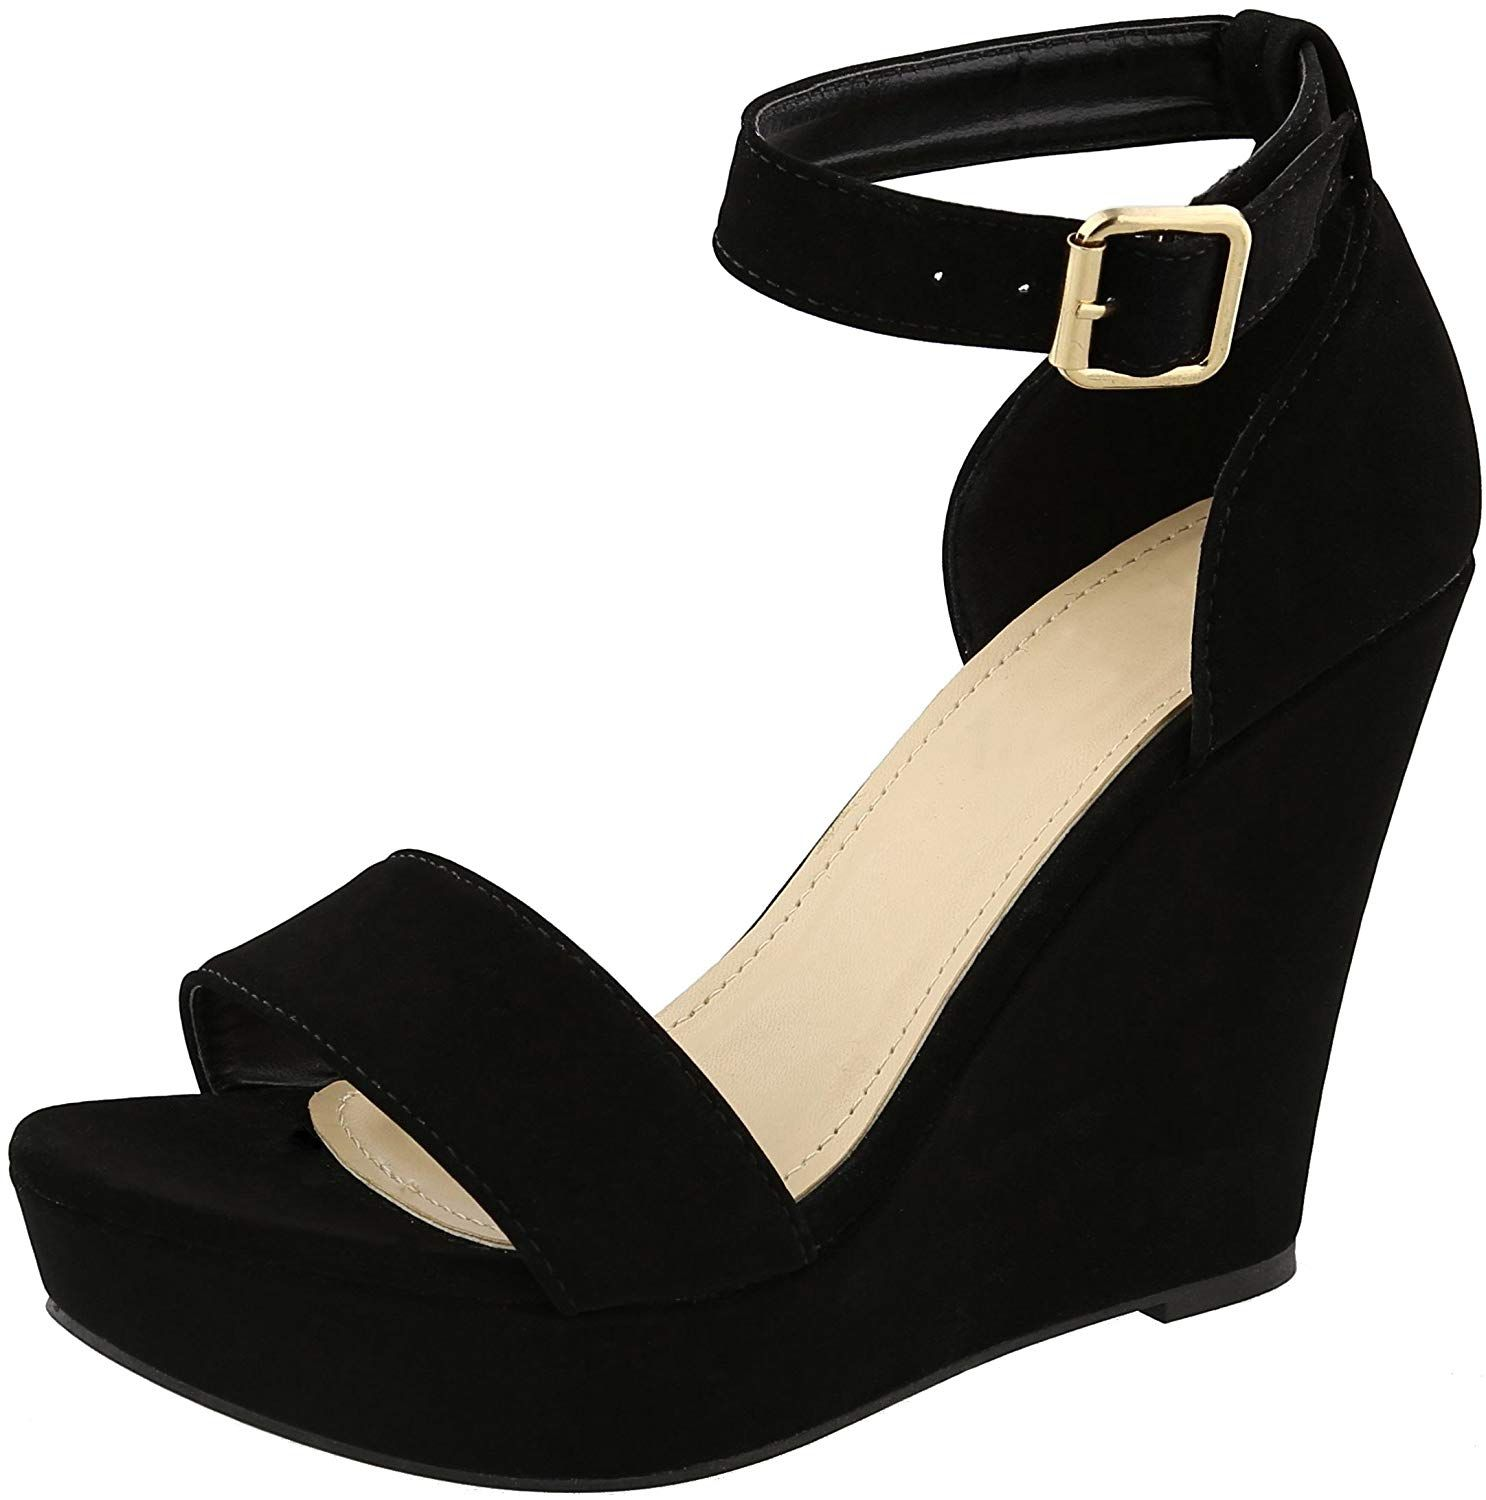 a26baba66ec Cambridge Select Women s Open Toe Single Band Buckled Ankle Strap Platform  Wedge Sandal. This wedge sandal from Cambridge Select features an open toe